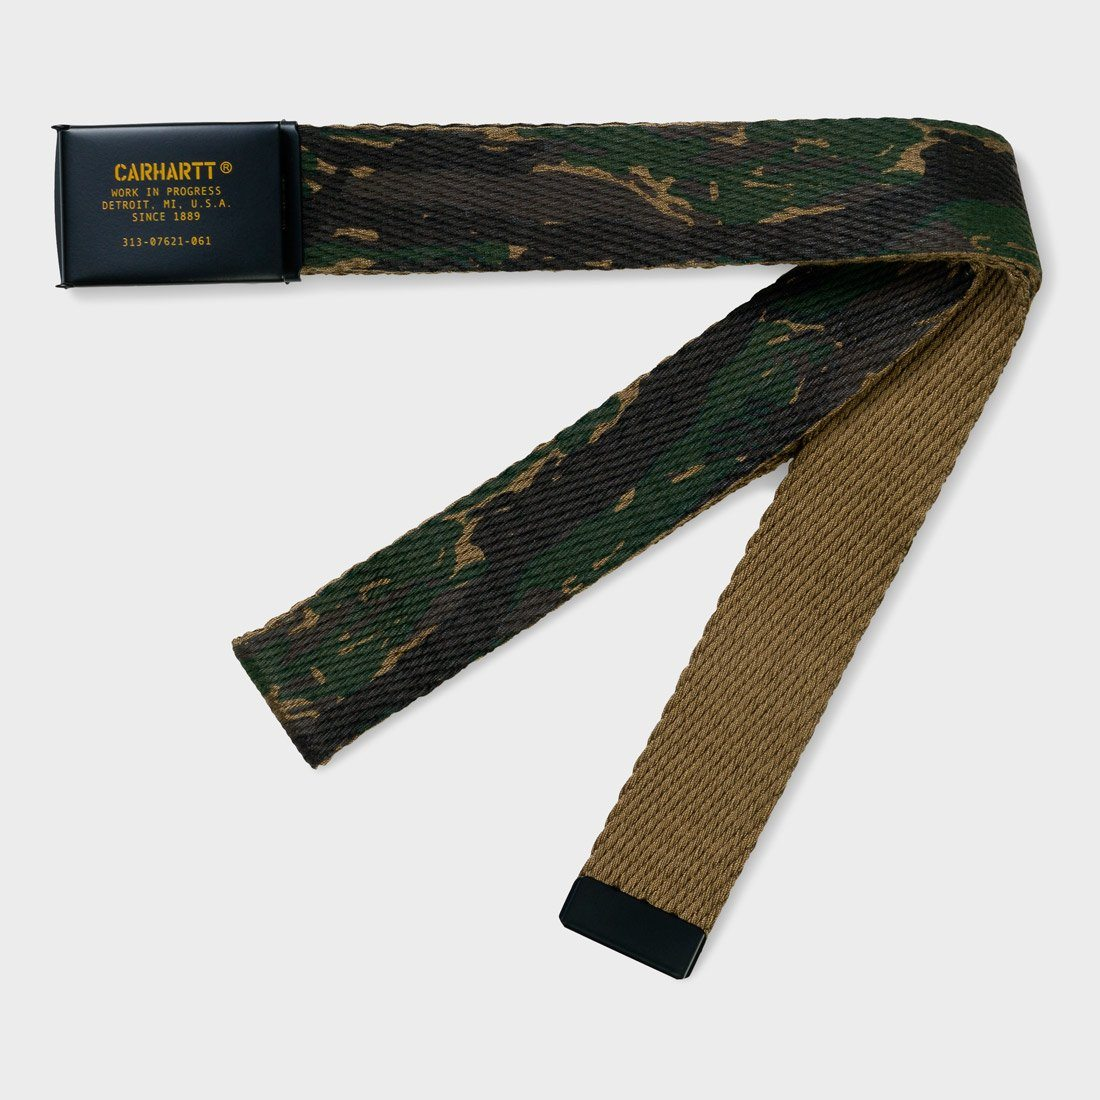 Carhartt WIP Military Printed Belt Camo Tiger Jungle